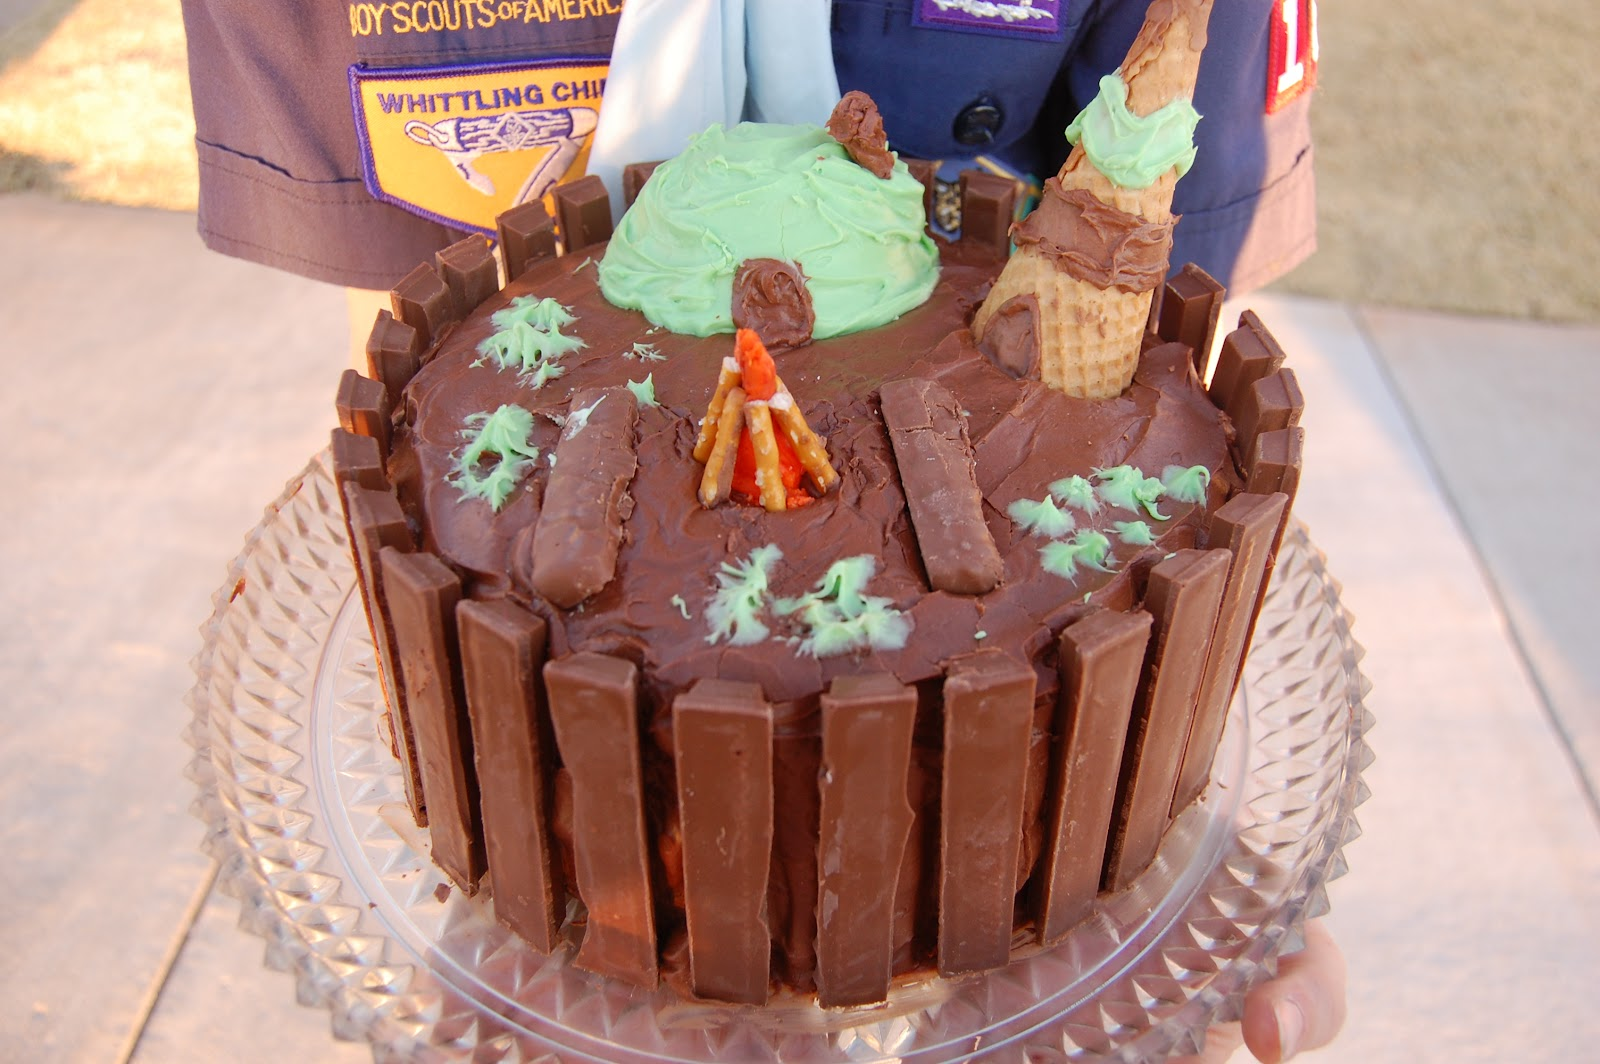 Cake Decorating For Boy Scouts : Babblings and More: Boy Scout Cake Decorating Contest